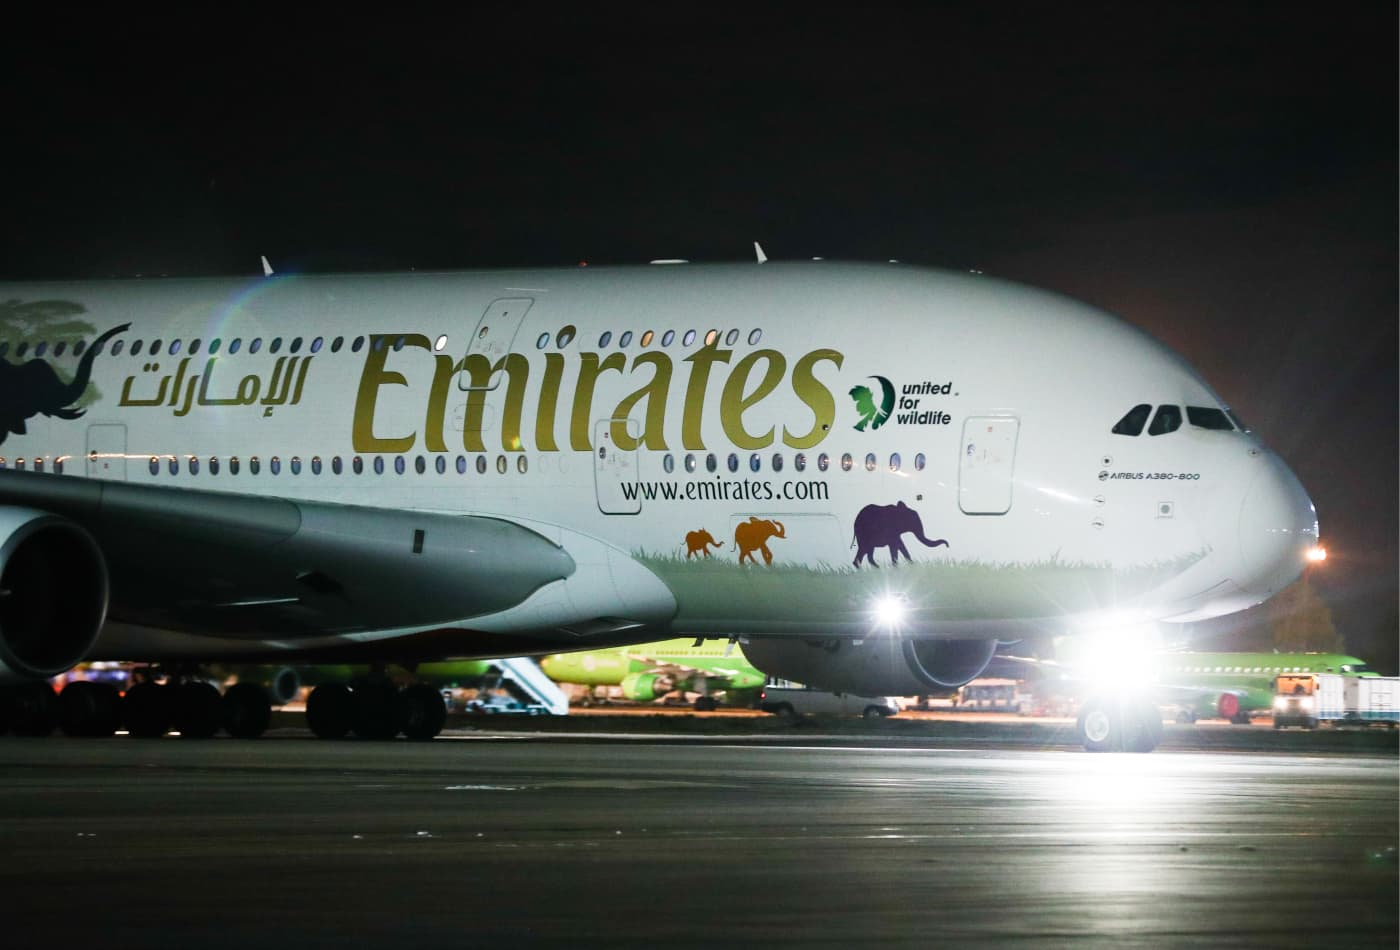 Emirates Airline to temporarily suspend all passenger flights from March 25 as UAE halts all air travel